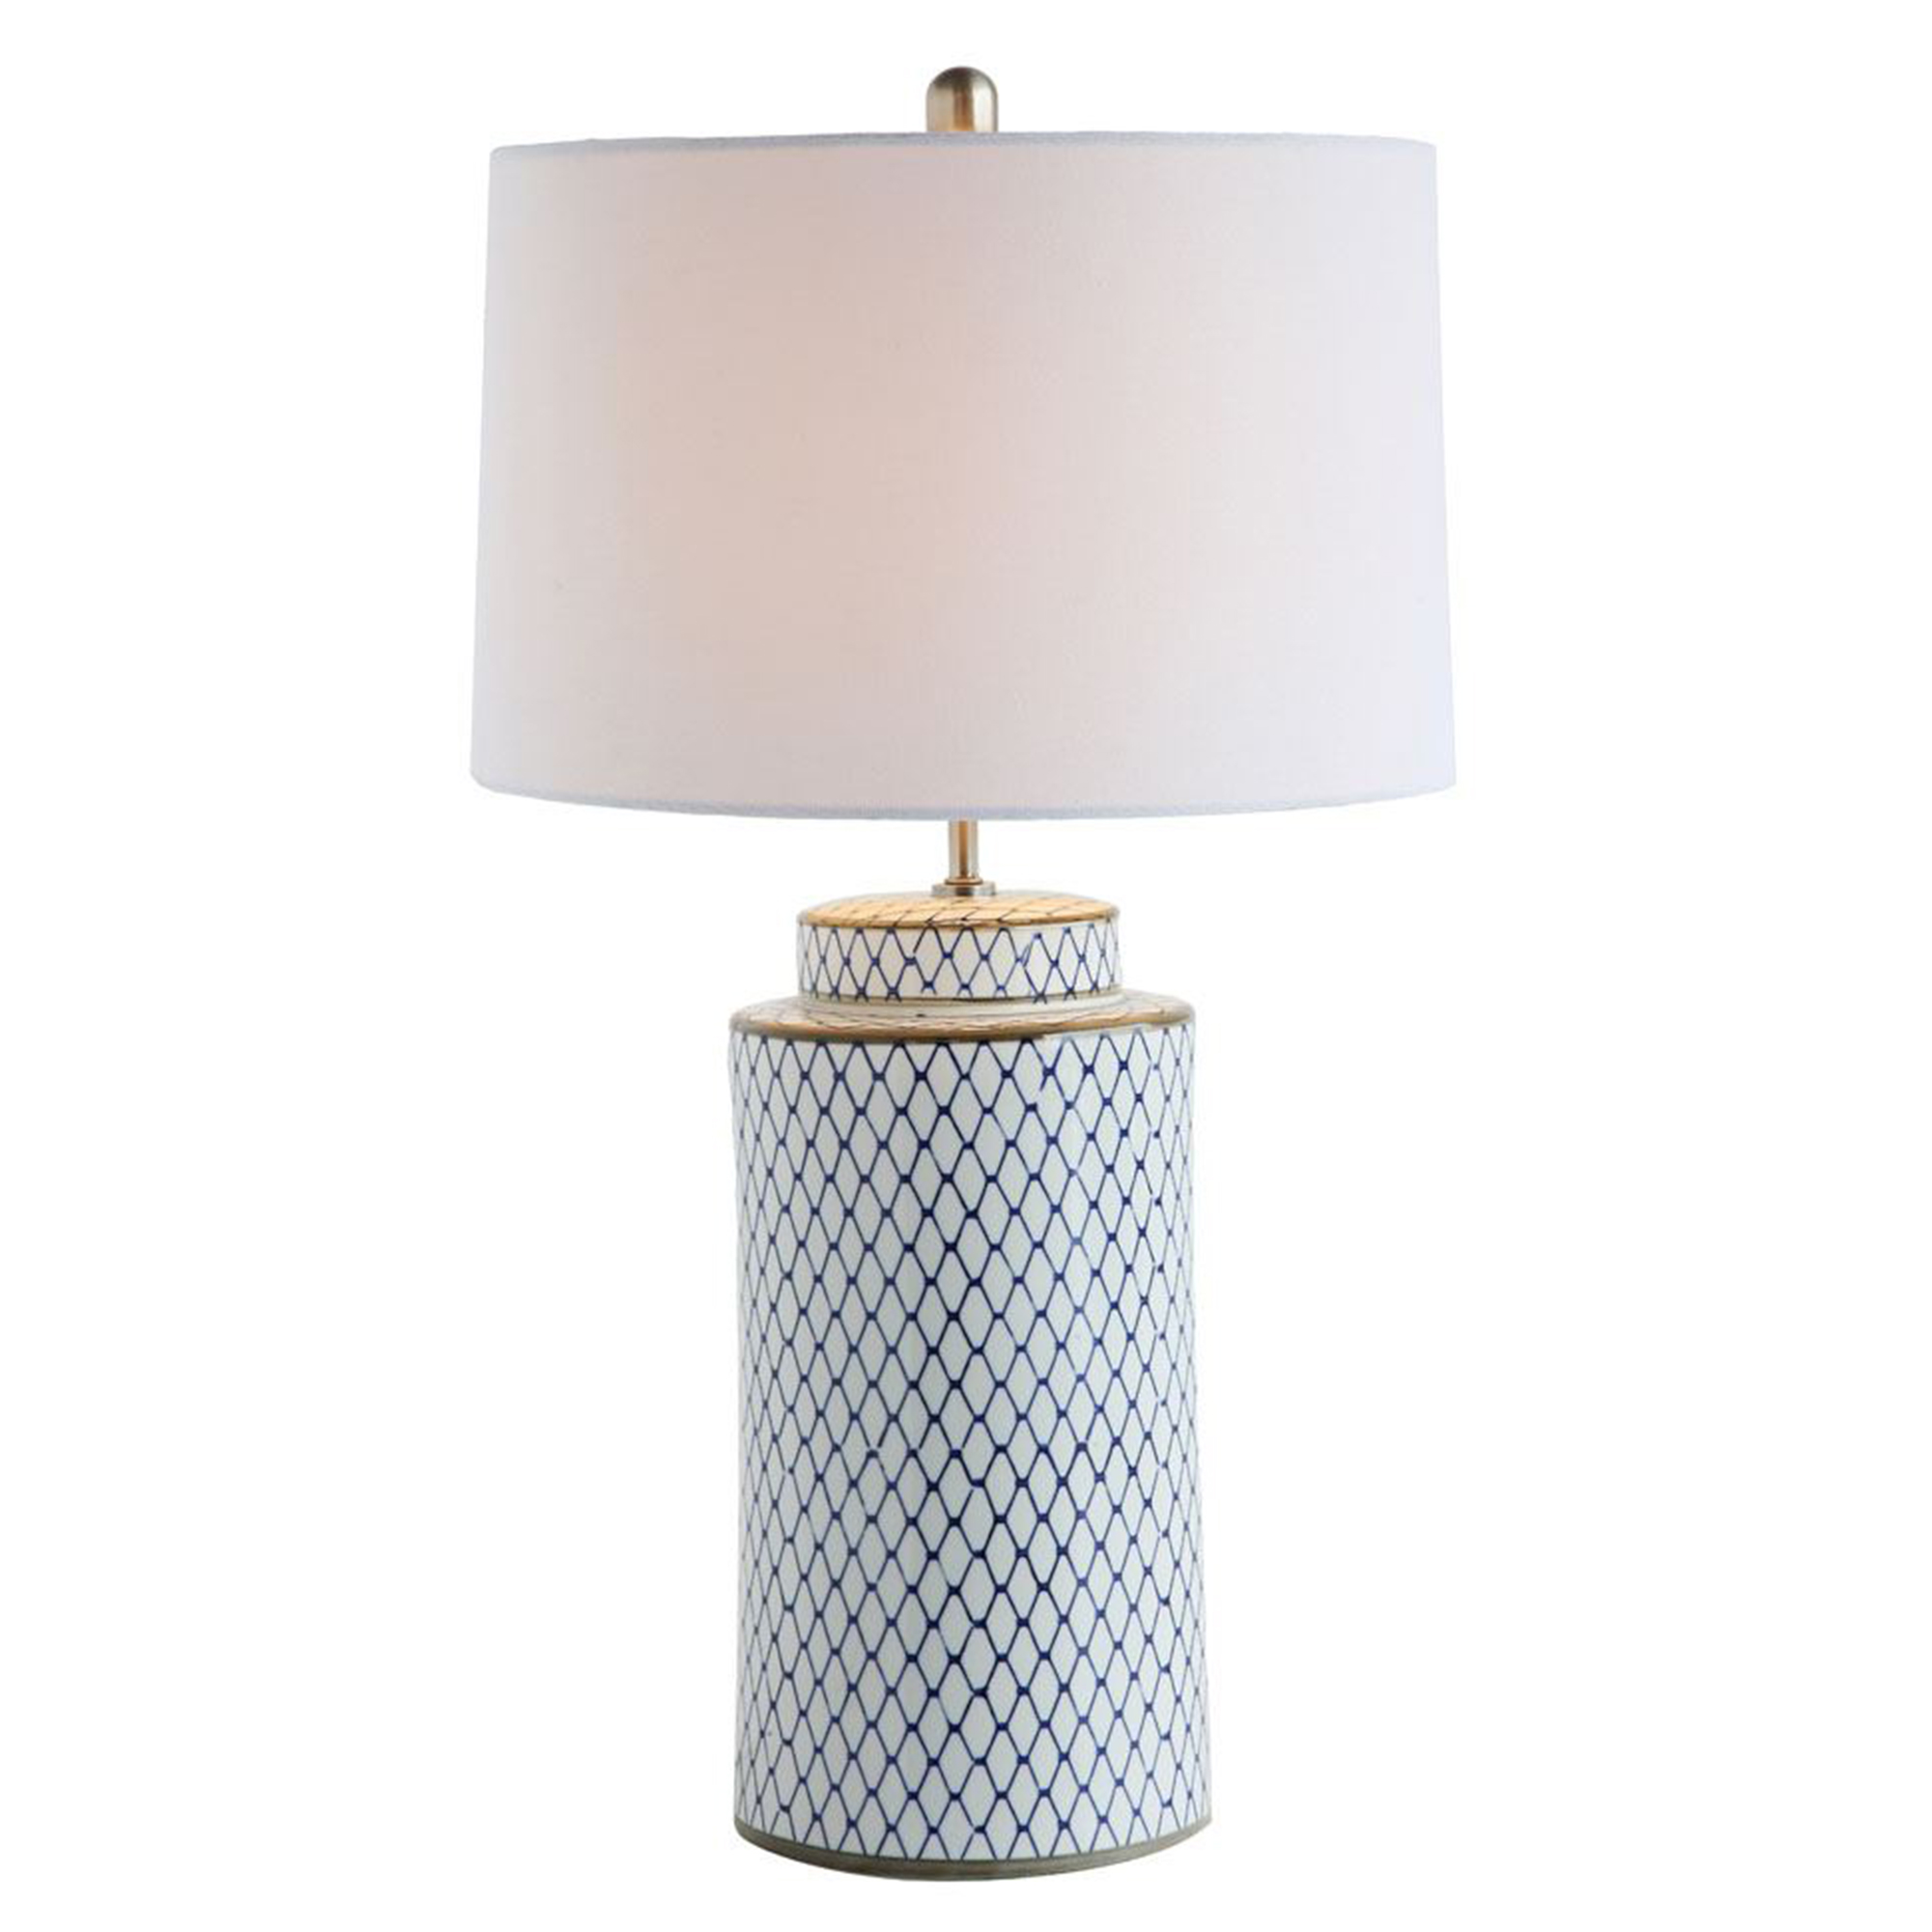 Indigo and White Table Lamp with Linen Shade